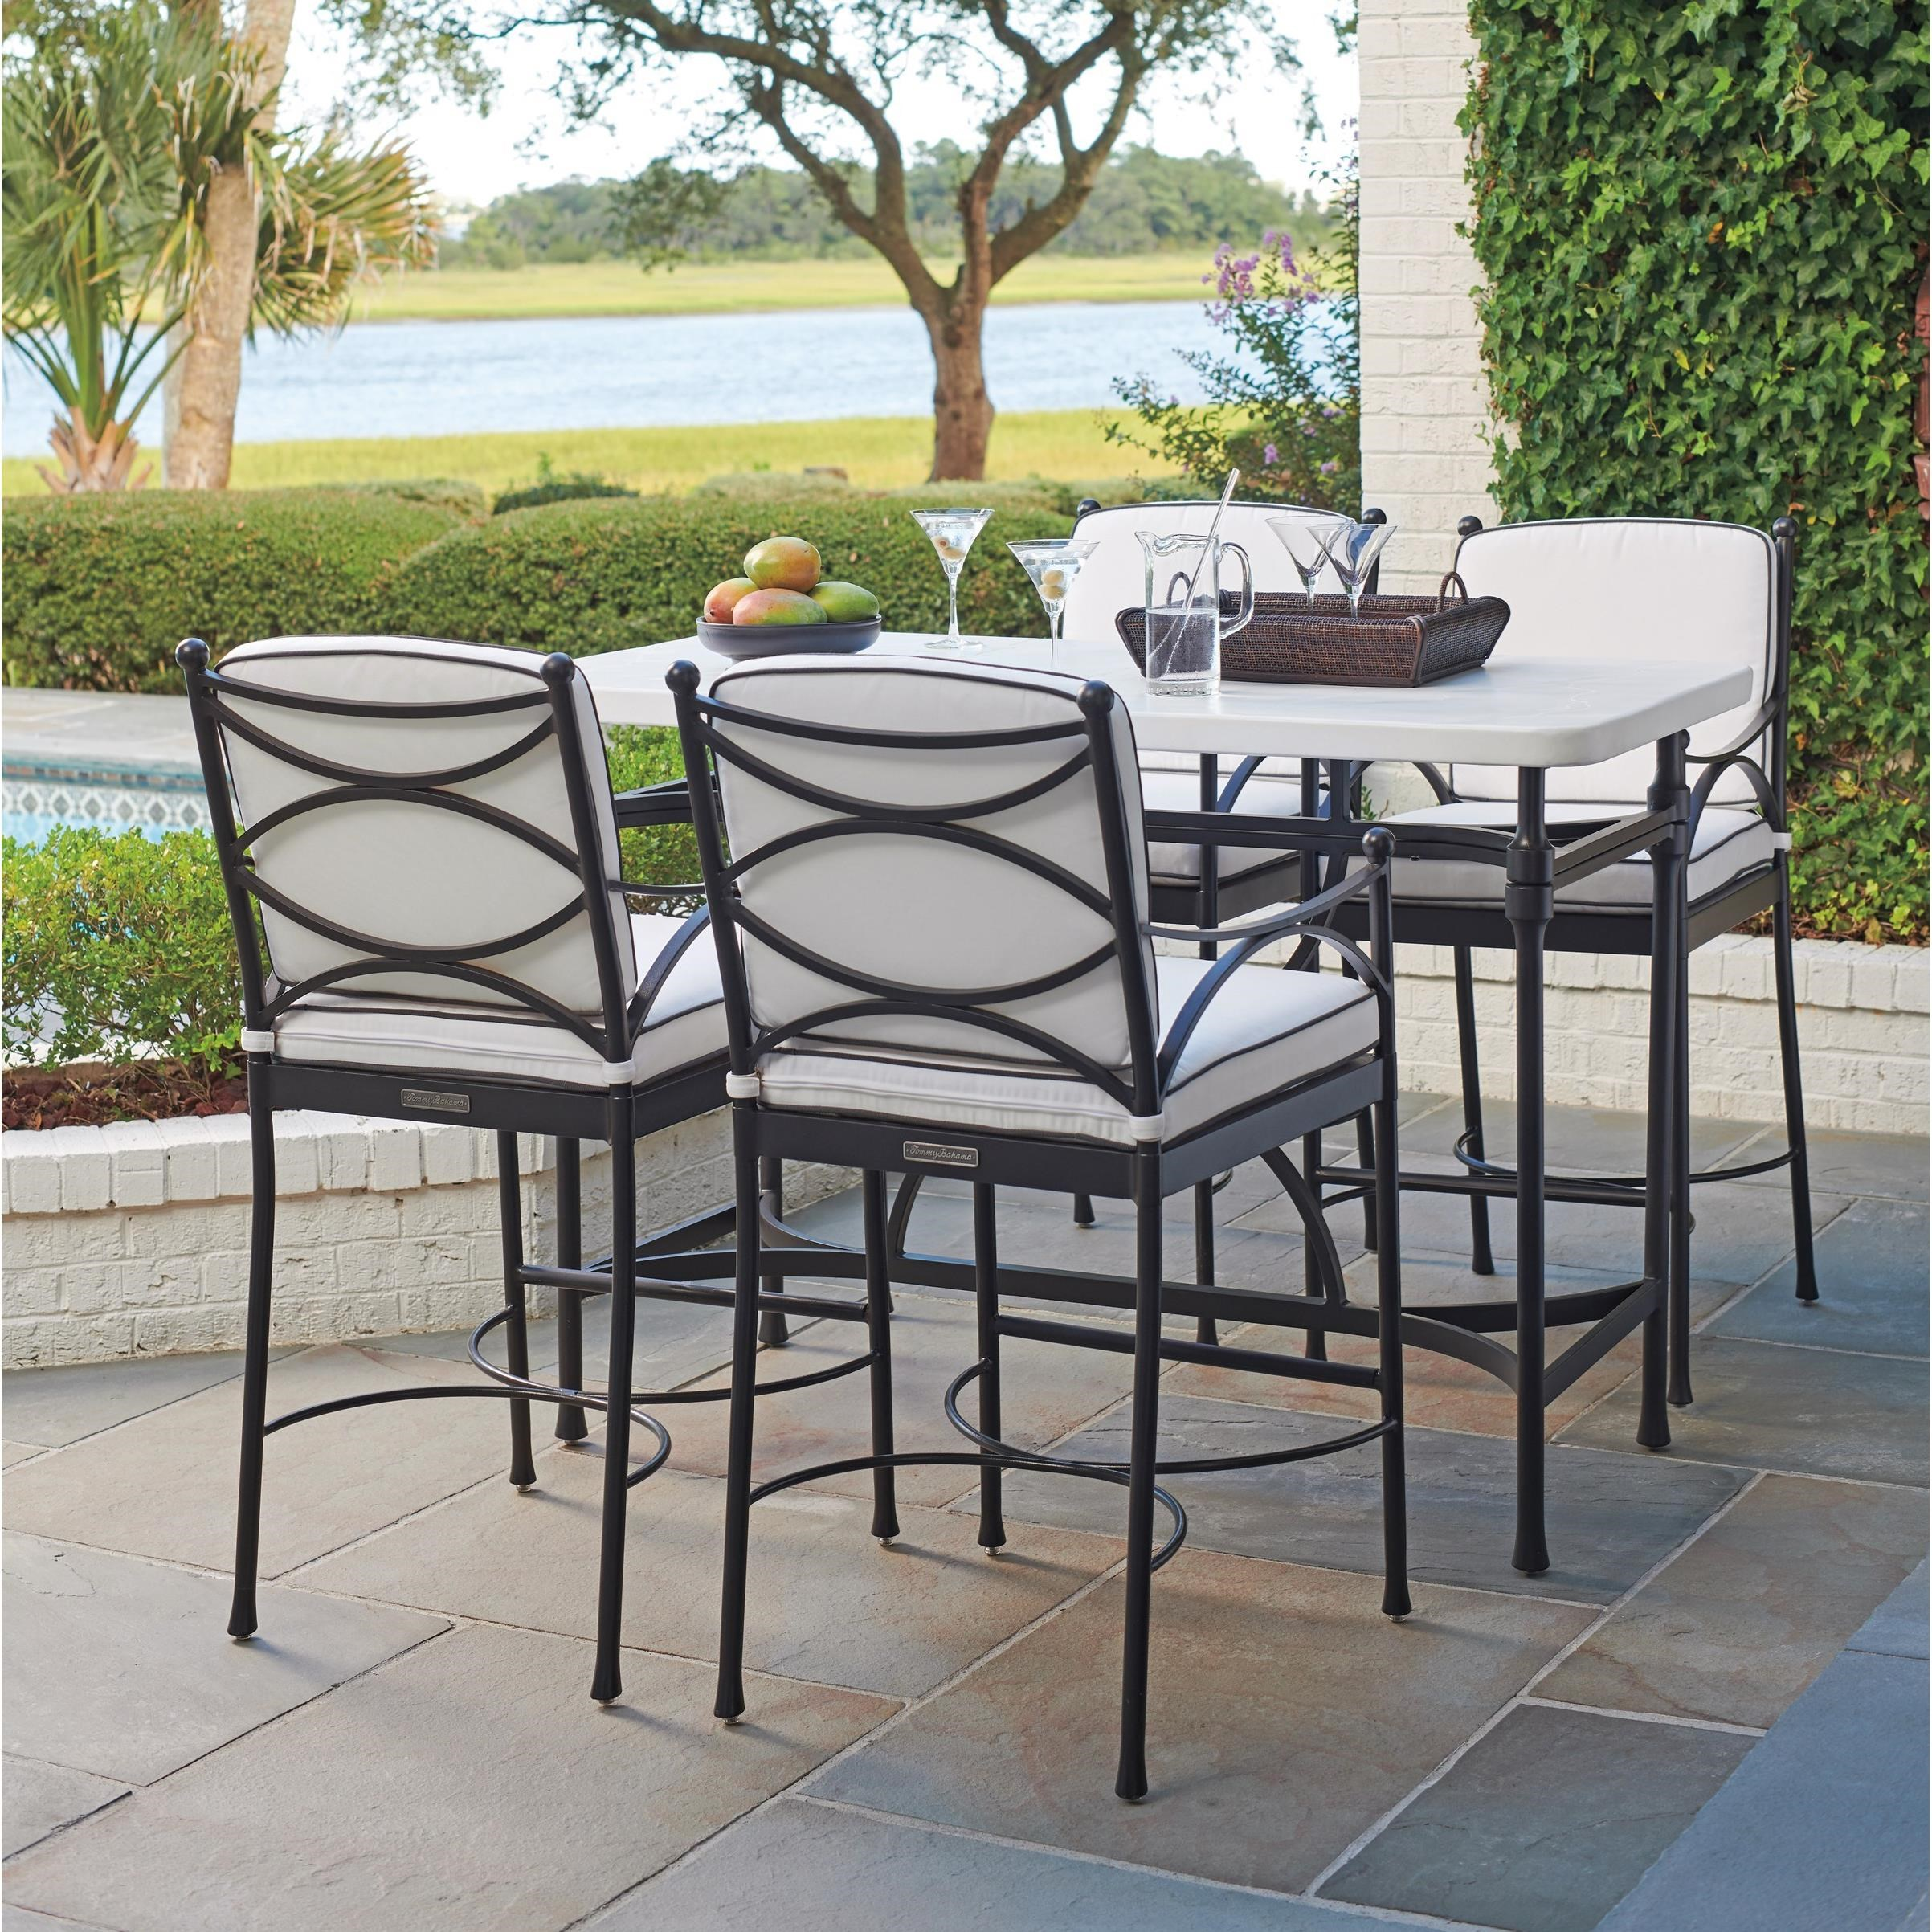 Pavlova 5 Piece Outdoor Hi/Lo Bistro Dining Set by Tommy Bahama Outdoor Living at Baer's Furniture